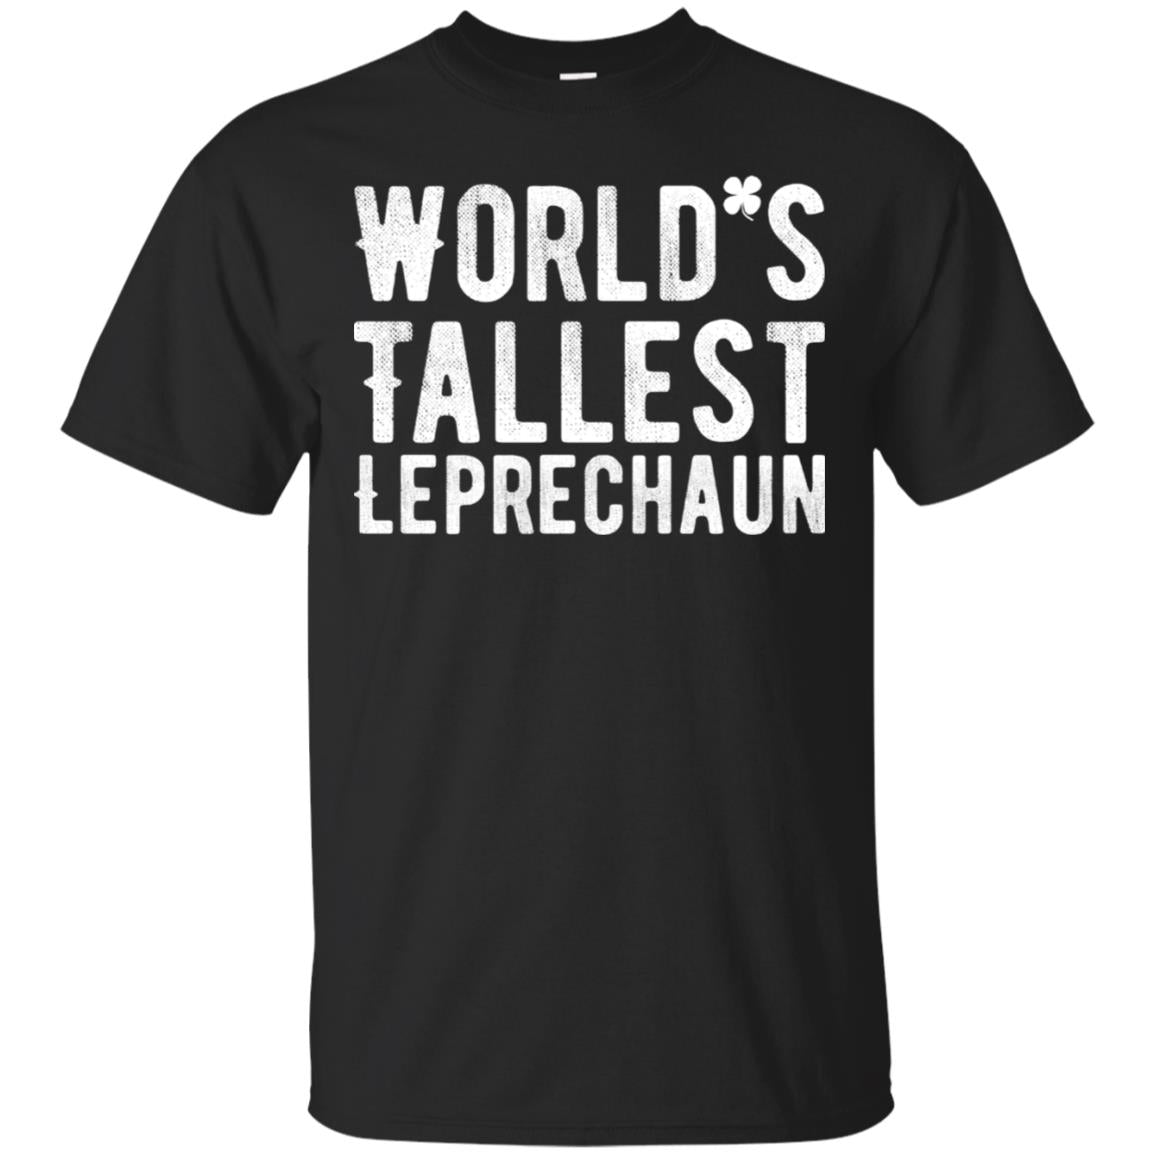 World's Tallest Leprechaun Shirt Featuring Shamrock 99promocode